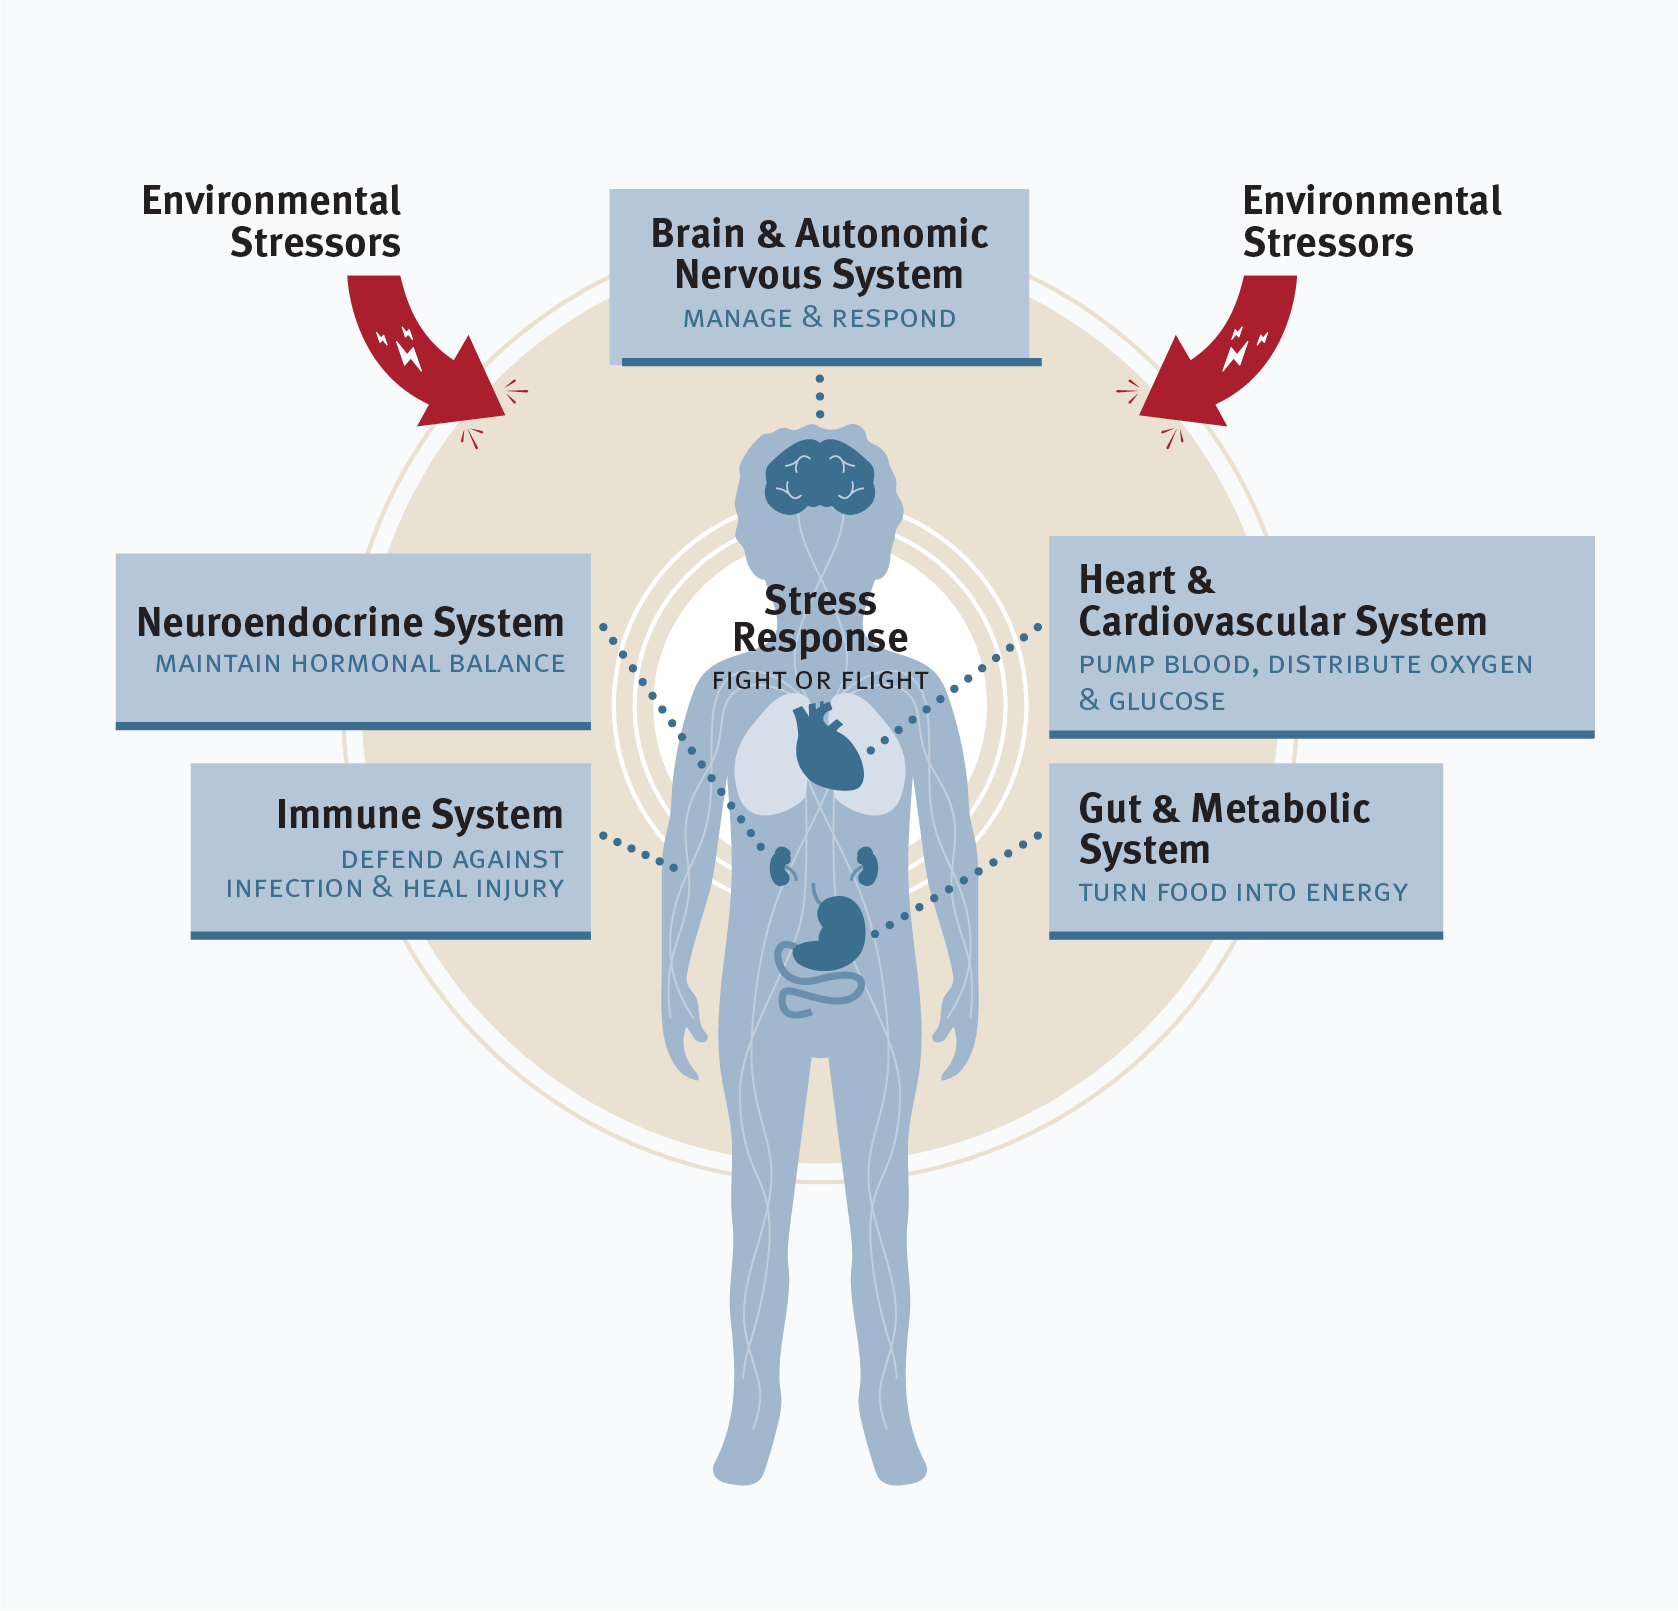 Graphic showing how environmental stressors affect the health of various systems of the body, including the immune system, which defends against infection and heals injuries; the neuroendocrine system, which maintains hormonal balance; the brain and autonomic system, which manages and responds; the heart and cardiovascular system, which pumps blood and distributes oxygen and glucose; and the gut and metabolic system, which turns food into energy. Environmental stressors trigger a stress response in the body that activates all of these systems.